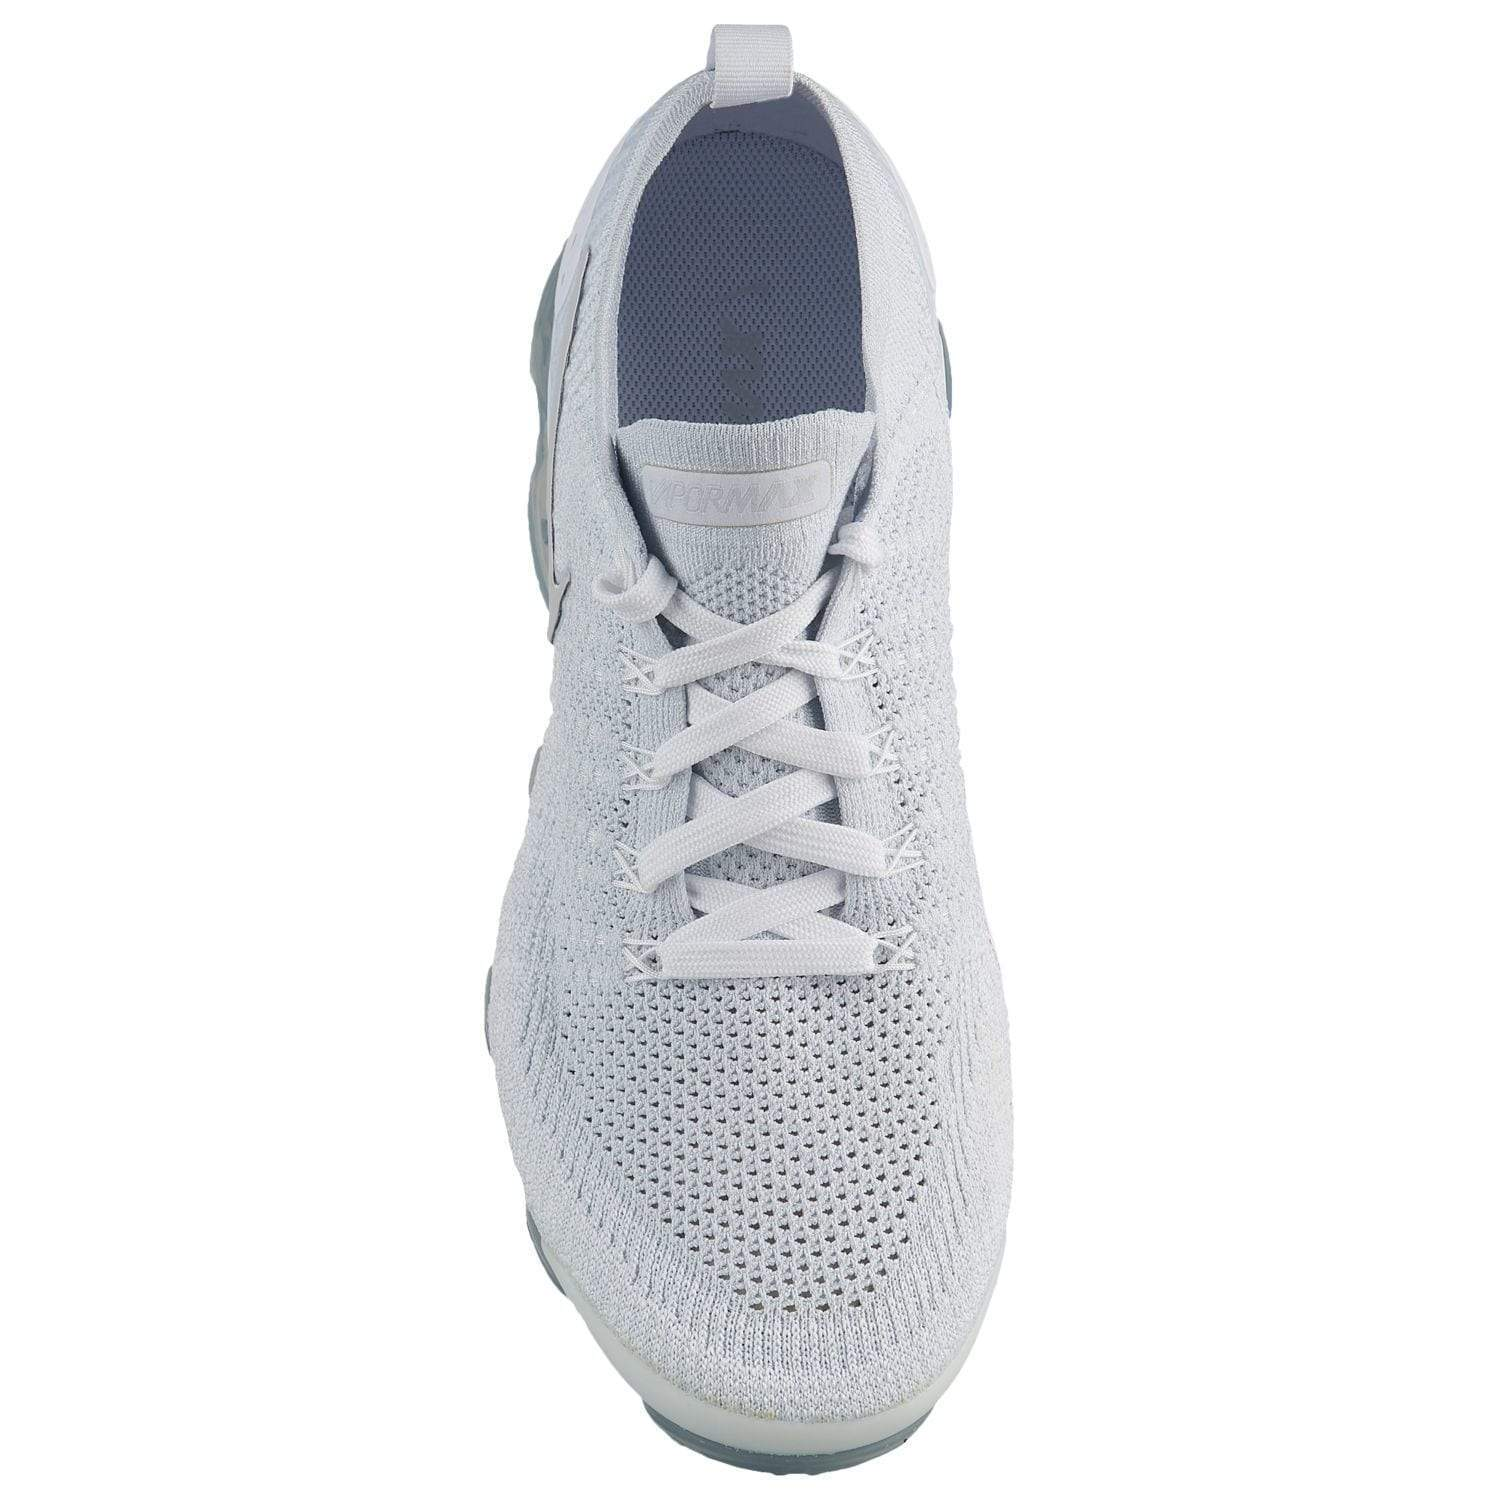 Air Vapormax Flyknit 2 - Mens Running Shoes - 942842-105 - White. Size  Charts. MEN 5ab0c8f5a